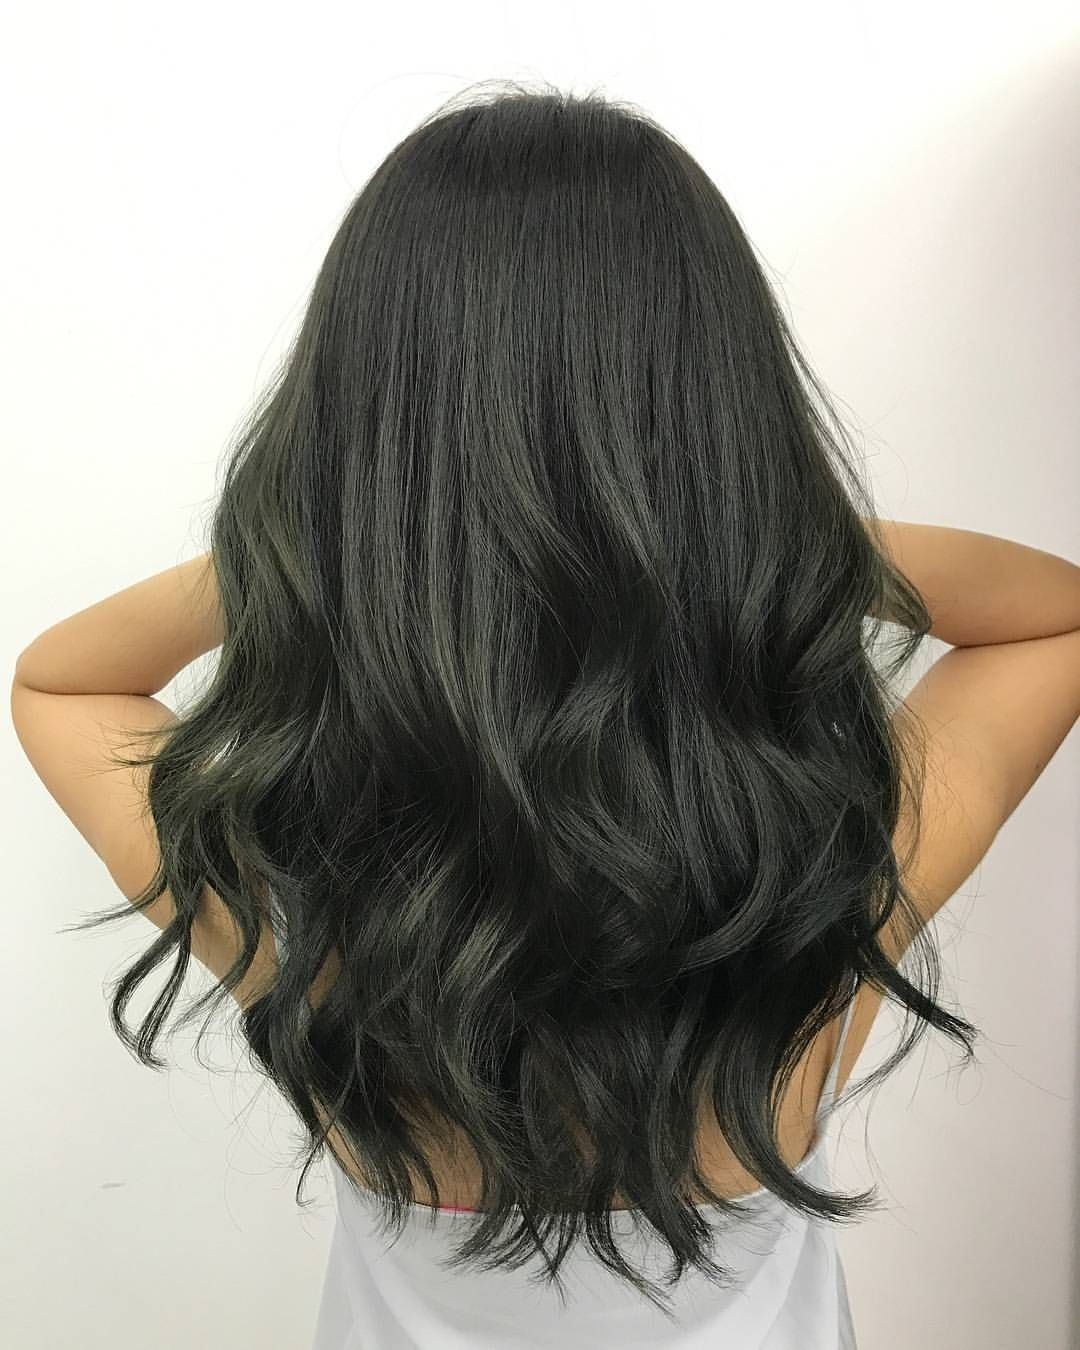 Digging The Colors Of Mother Nature Gradients Of Green Ash Tone Love This Hair Makeover Book Yourself An Ash Green Hair Ash Green Hair Color Ash Hair Color